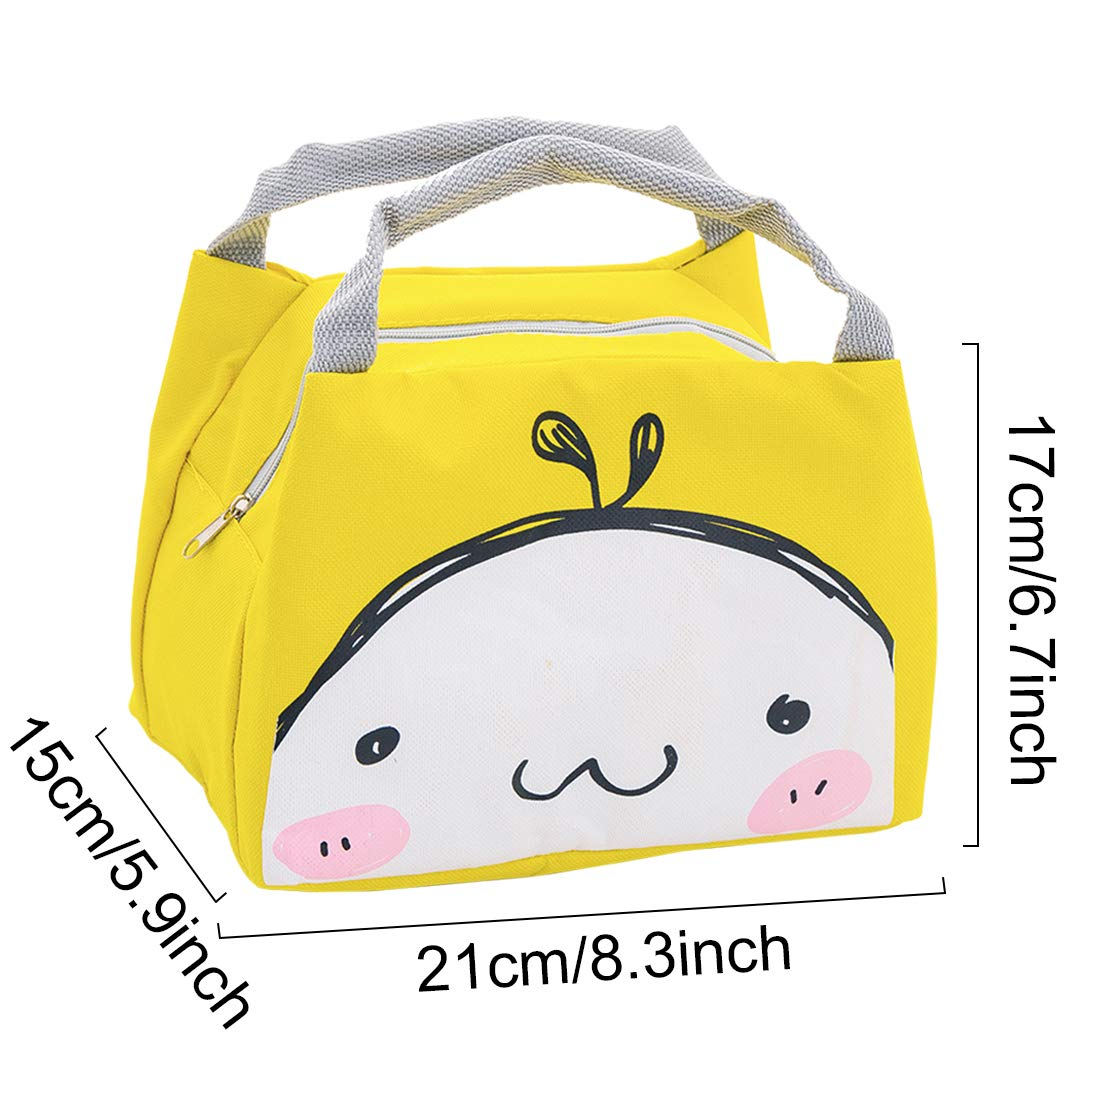 School and Picnic Oyachic Cute Thermal Lunch Bag Insulated Tote Leakproof Zipper Bag with Foil Liner for Office sheep CC-C60095-CN